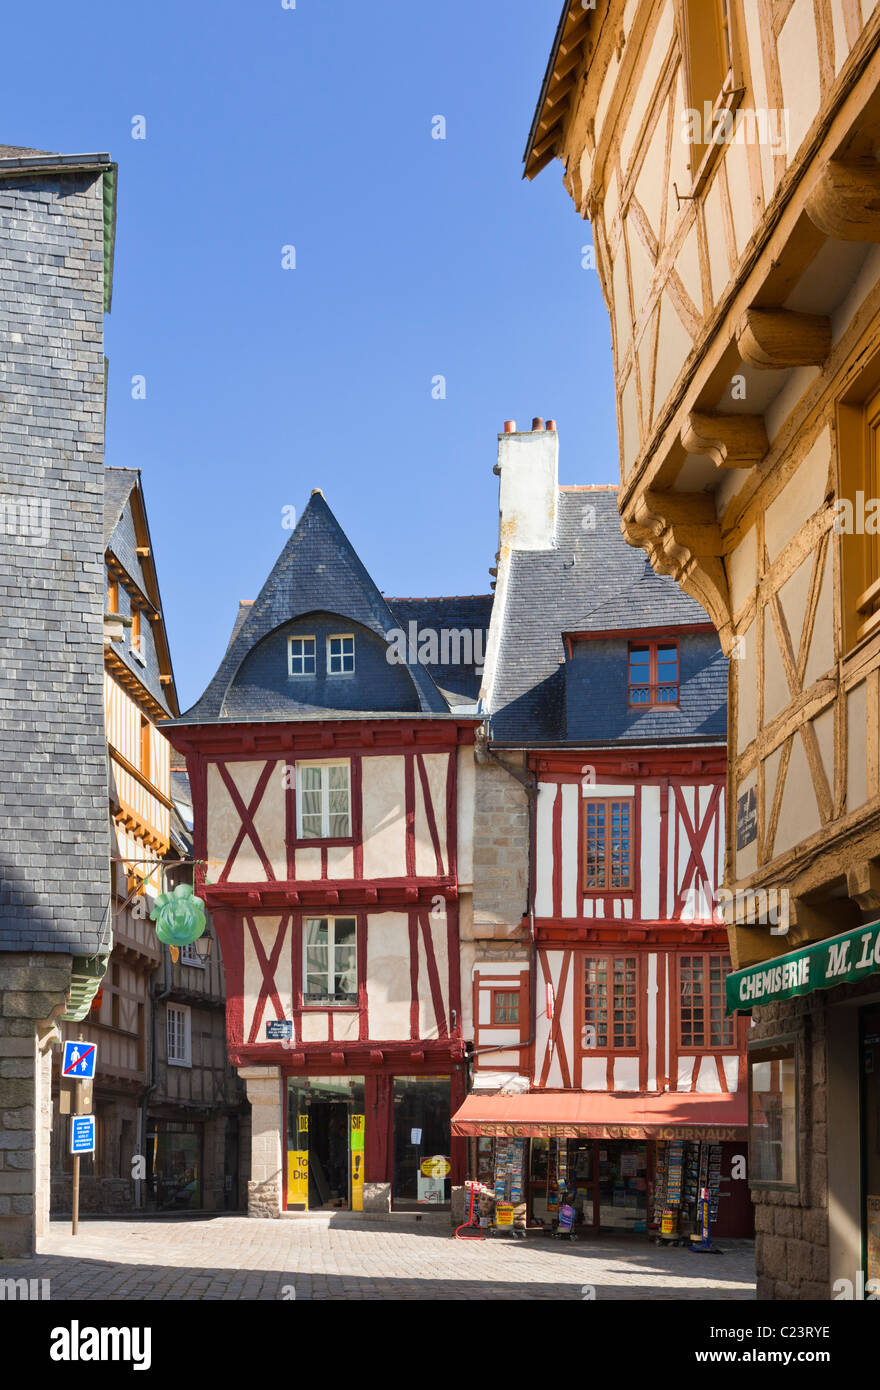 Vannes, France - Place Henri IV square in the city with old medieval buildings, Vannes, Morbihan, Brittany, France, Stock Photo